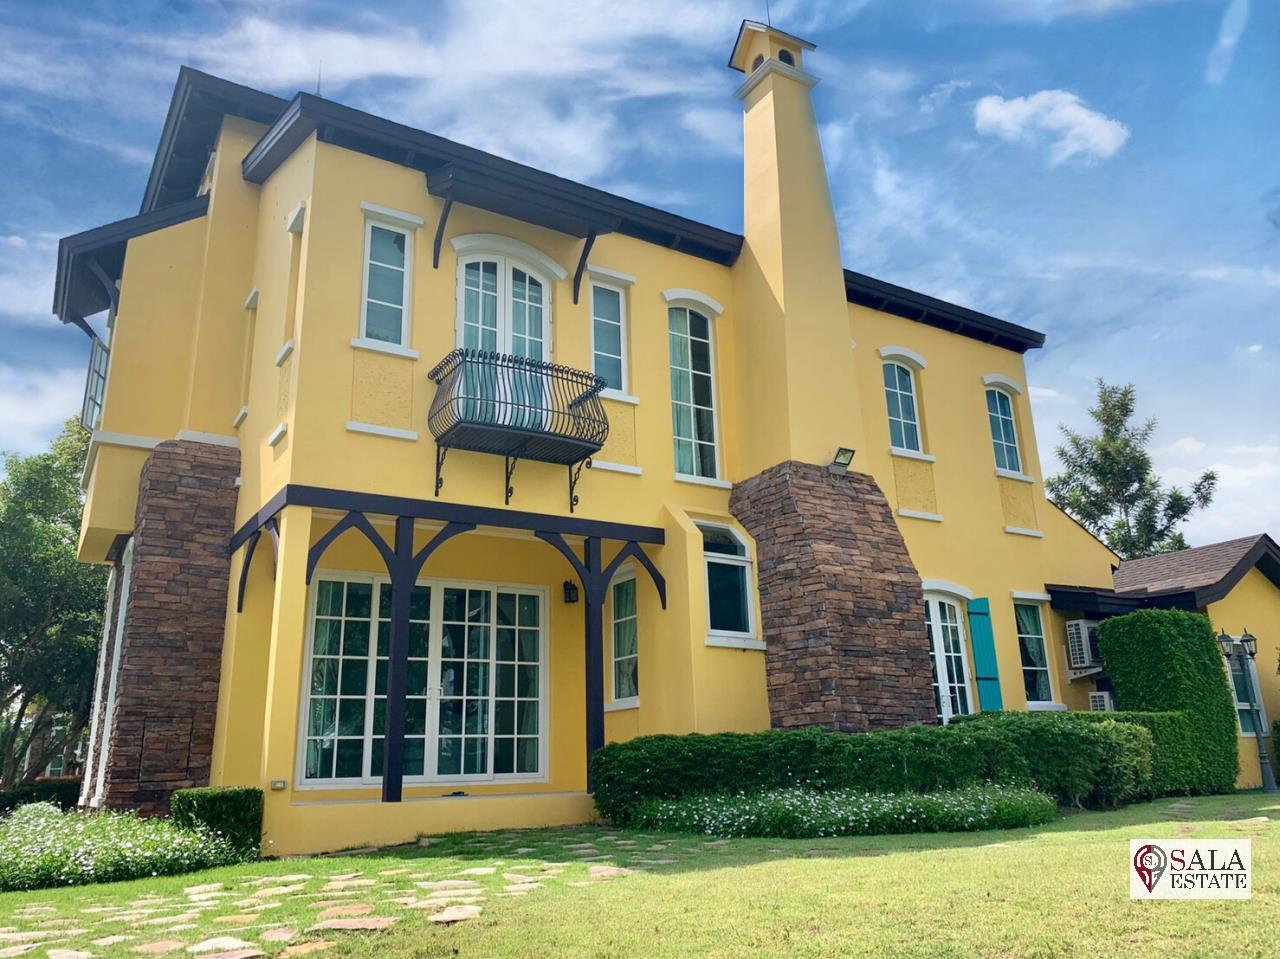 SALA ESTATE Agency's (FOR SALE ONLY 18 MB) PRIVATE LUXURY HOUSE IN KHAO YAI - MAGNOLIAS FRENCH COUNTRY KHAO YAI 2